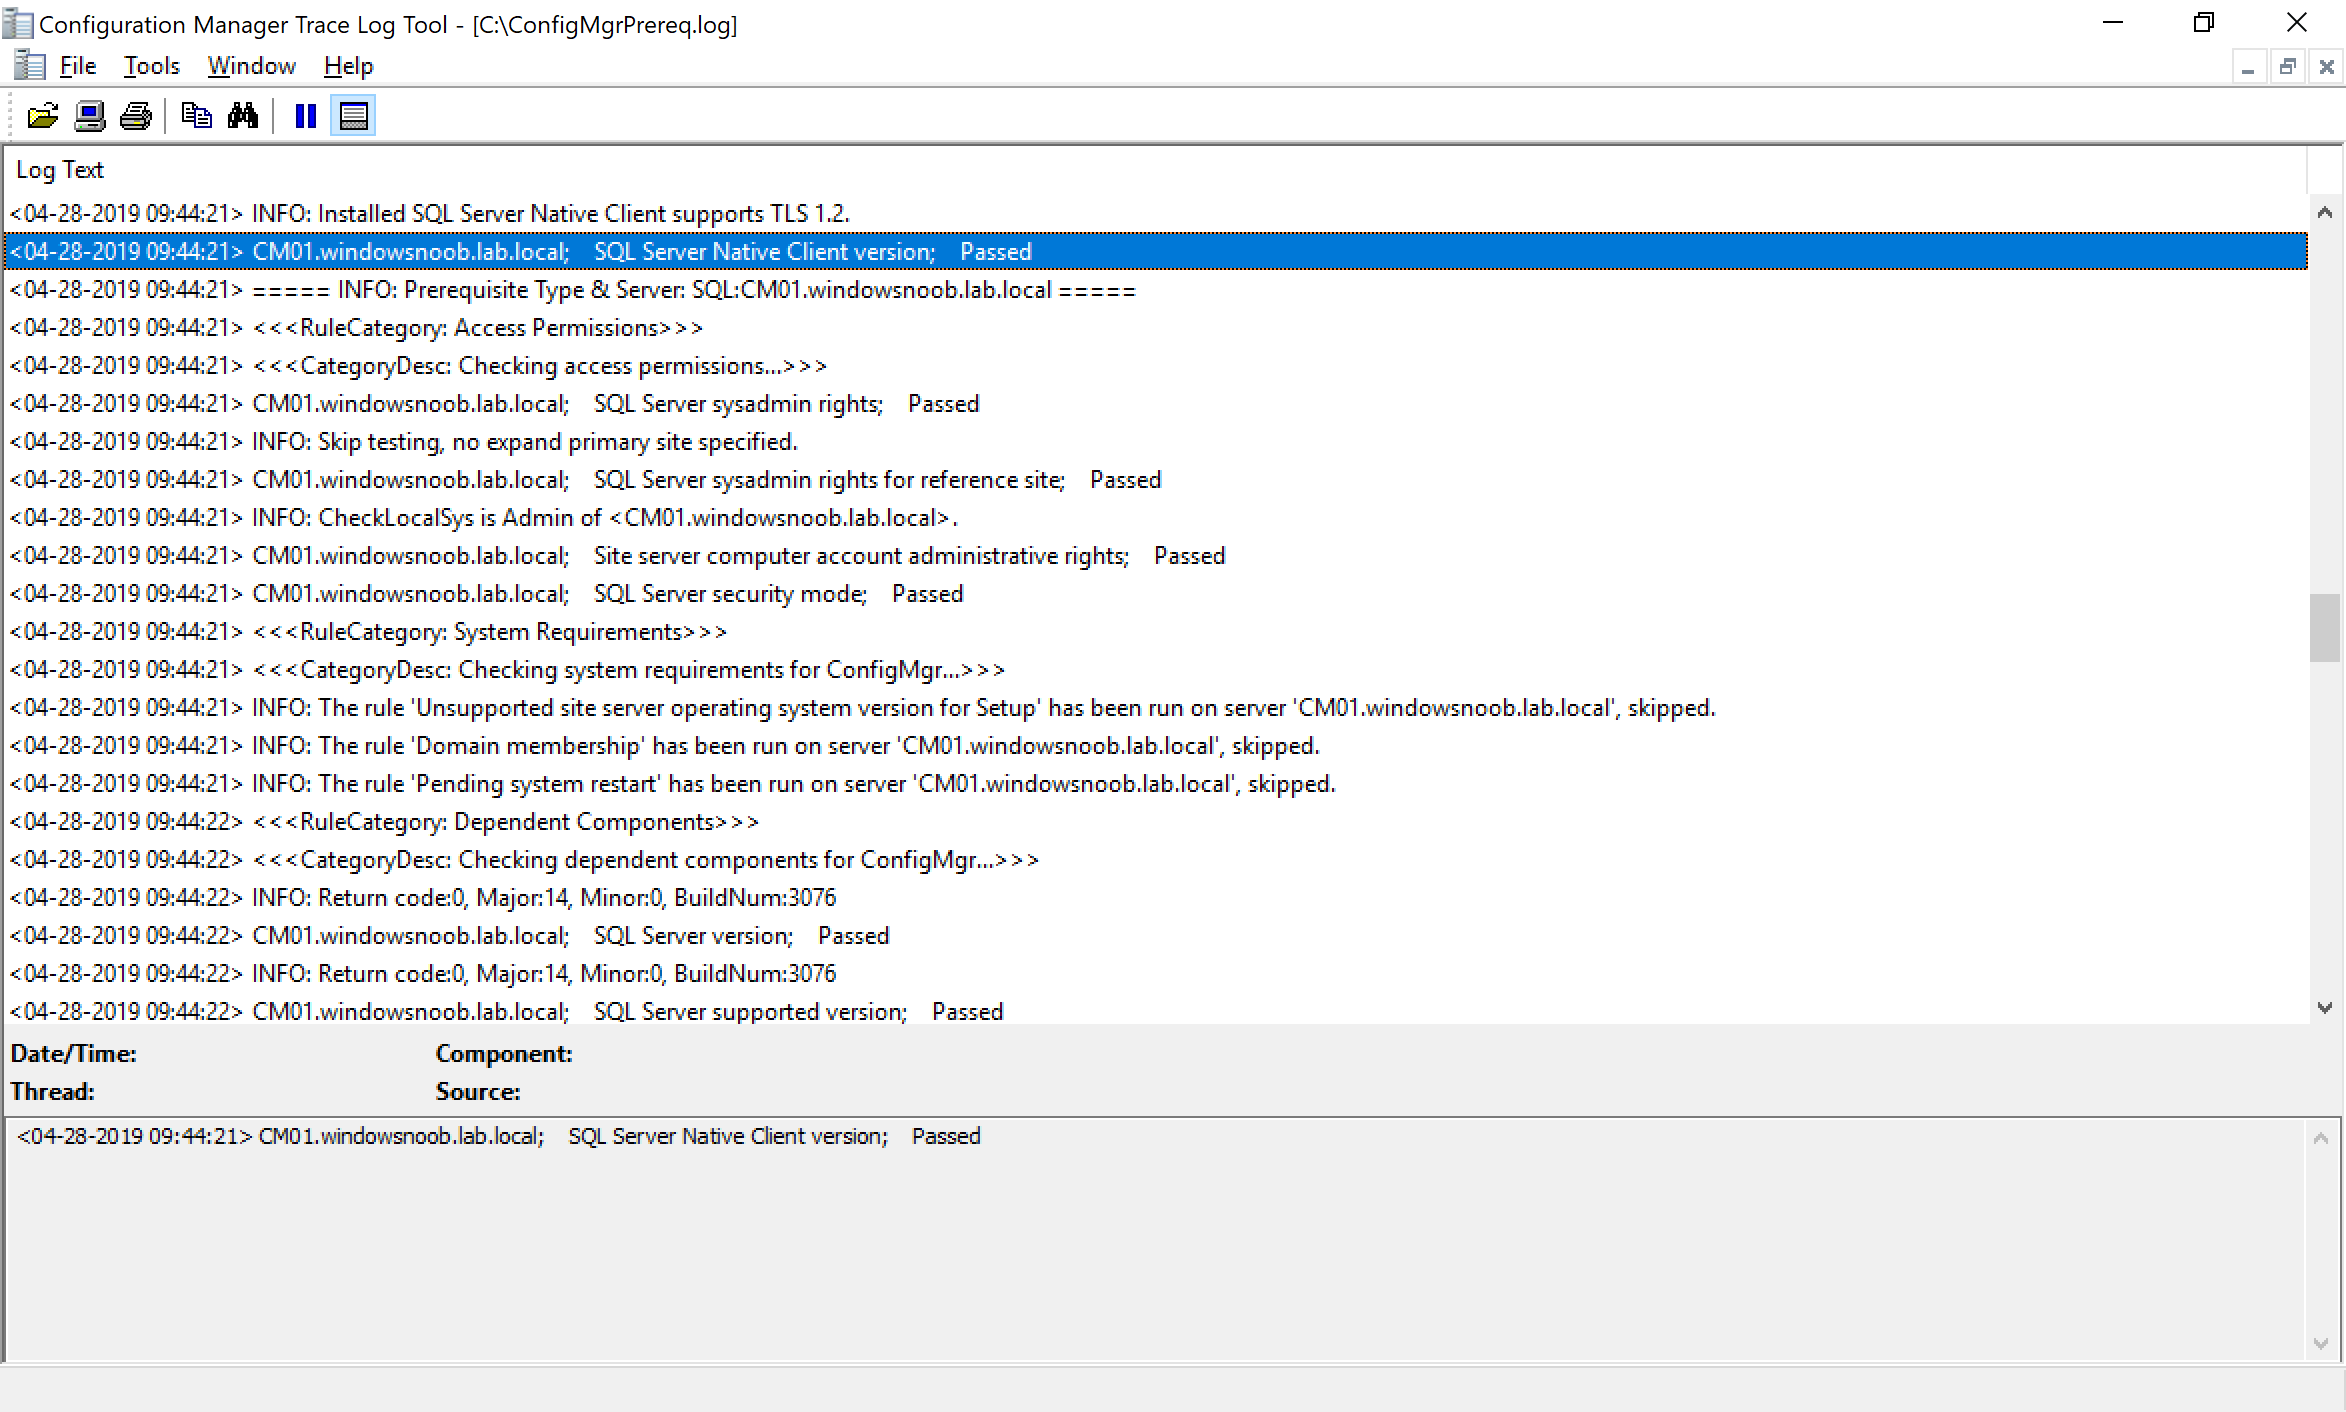 Upgrading the SQL Server 2012 Client Agent with PowerShell to